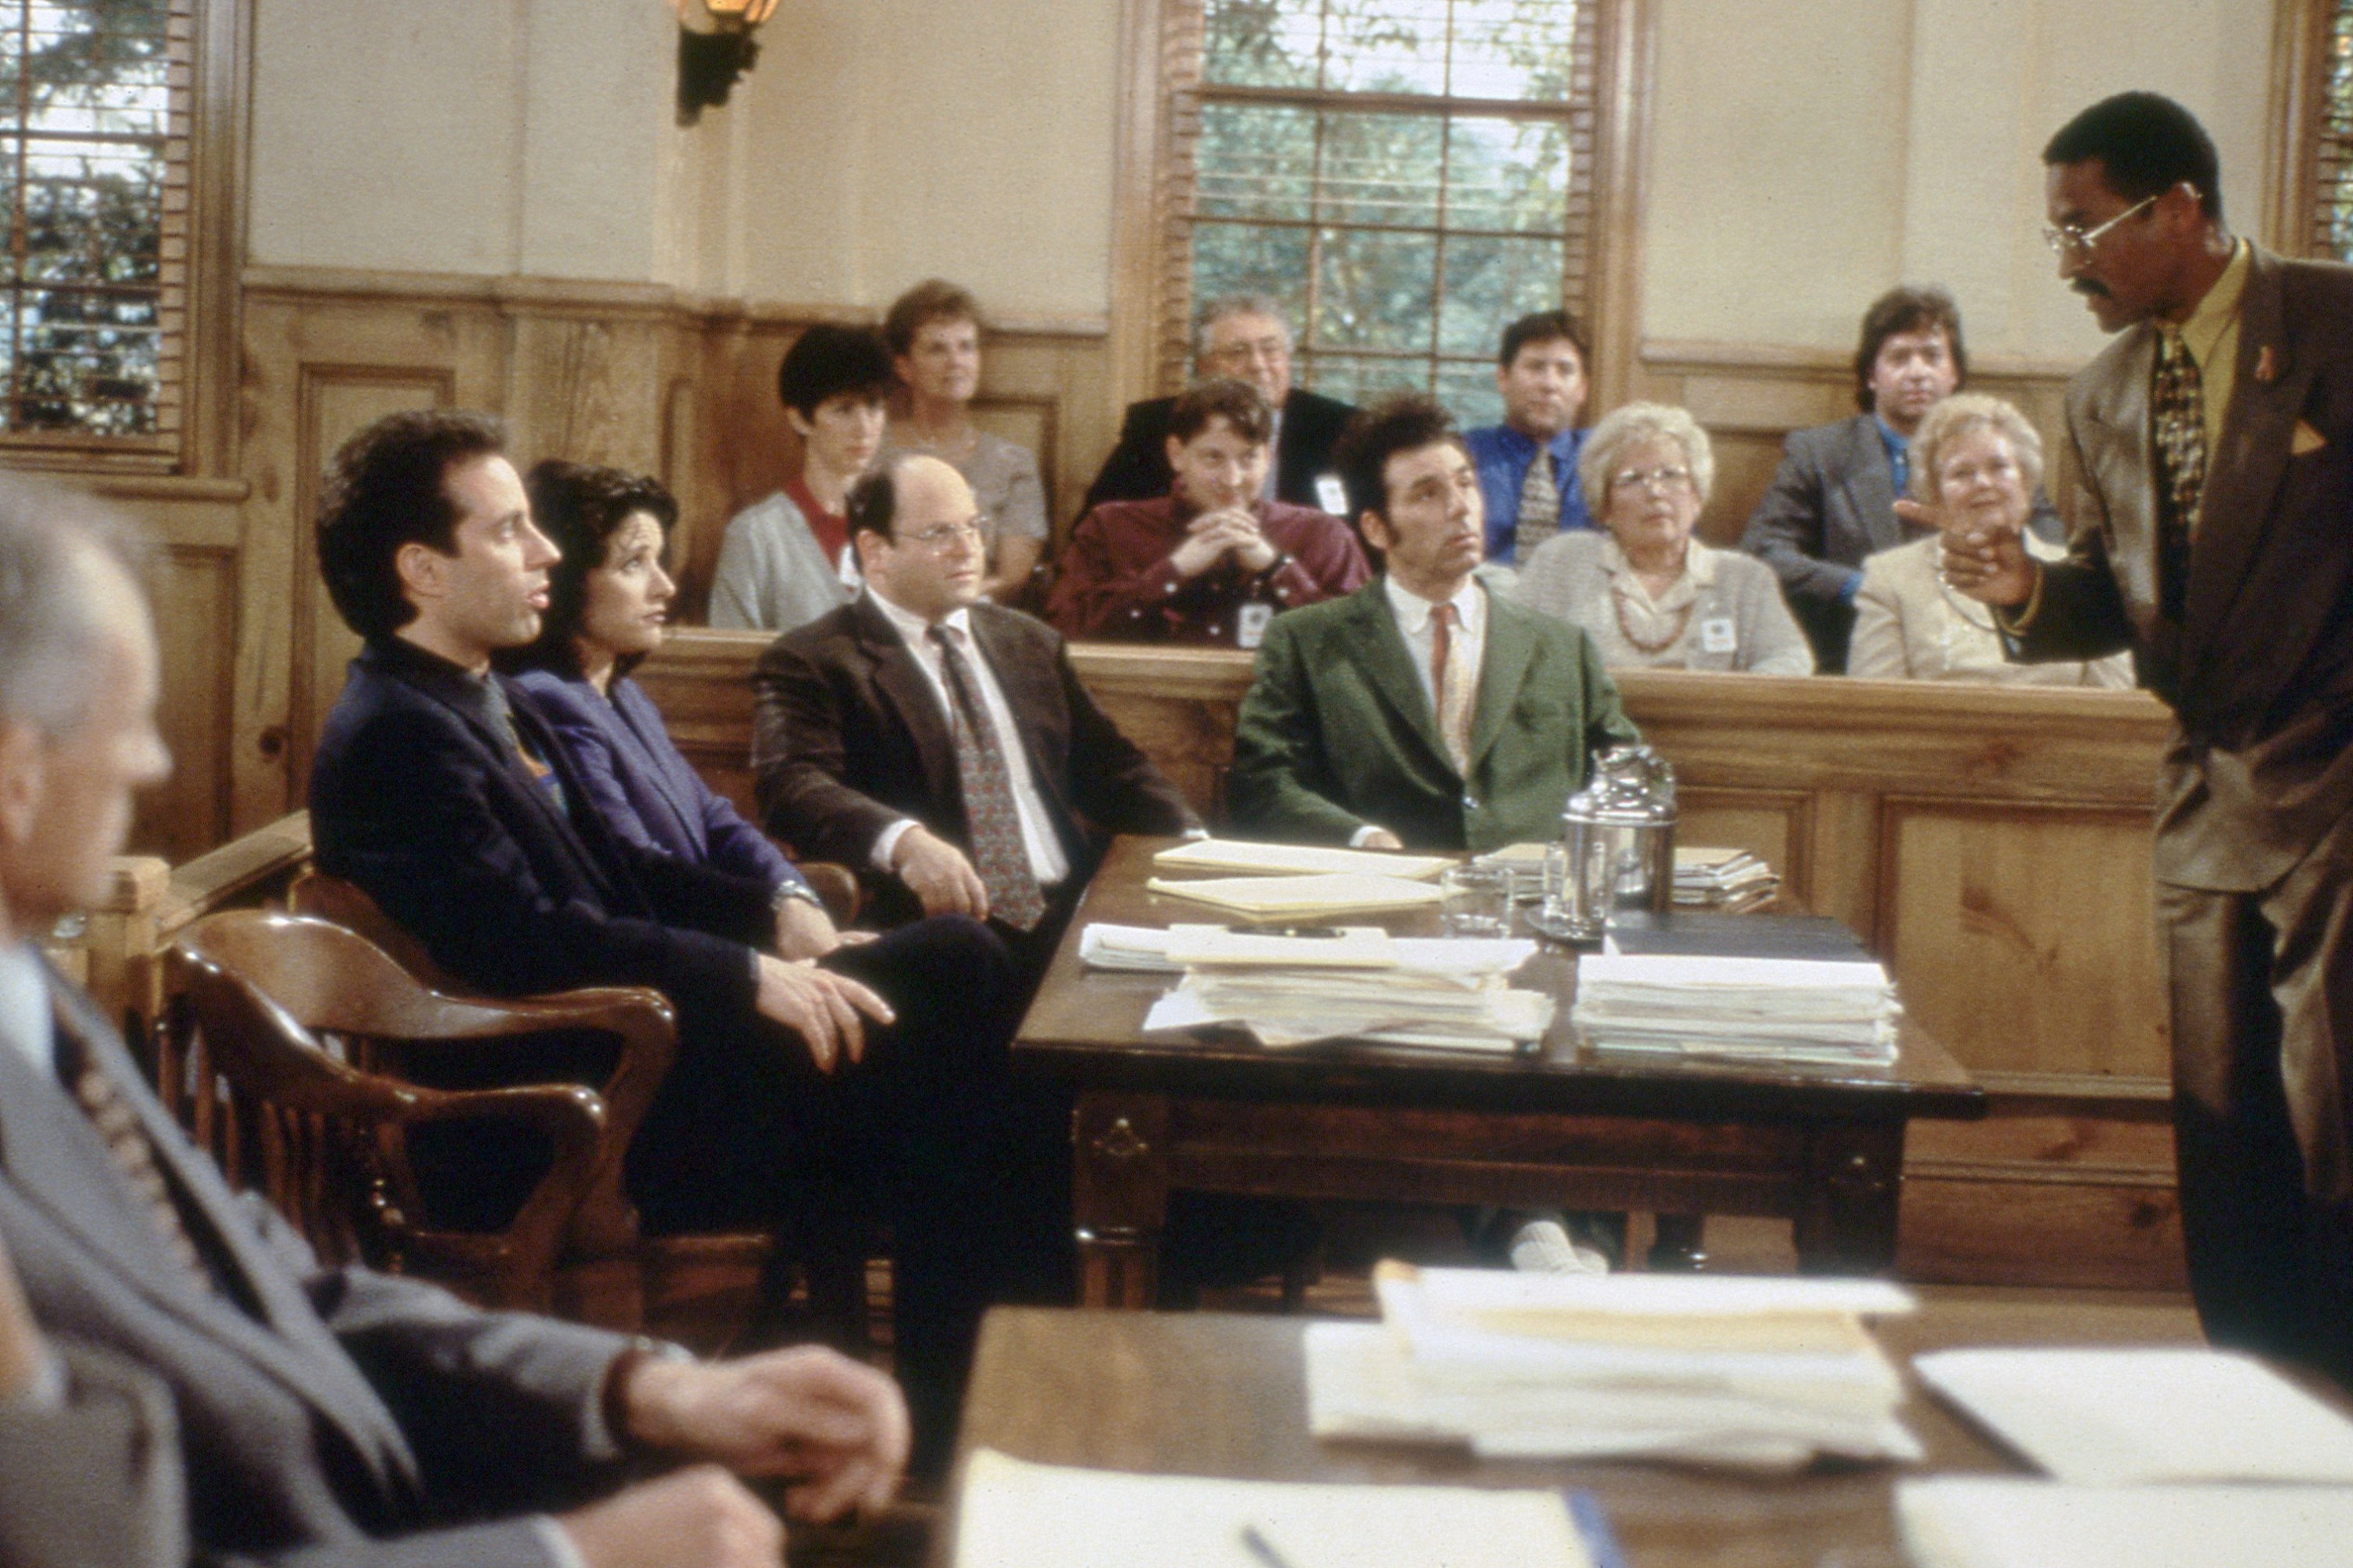 the cast at their trial in the finale